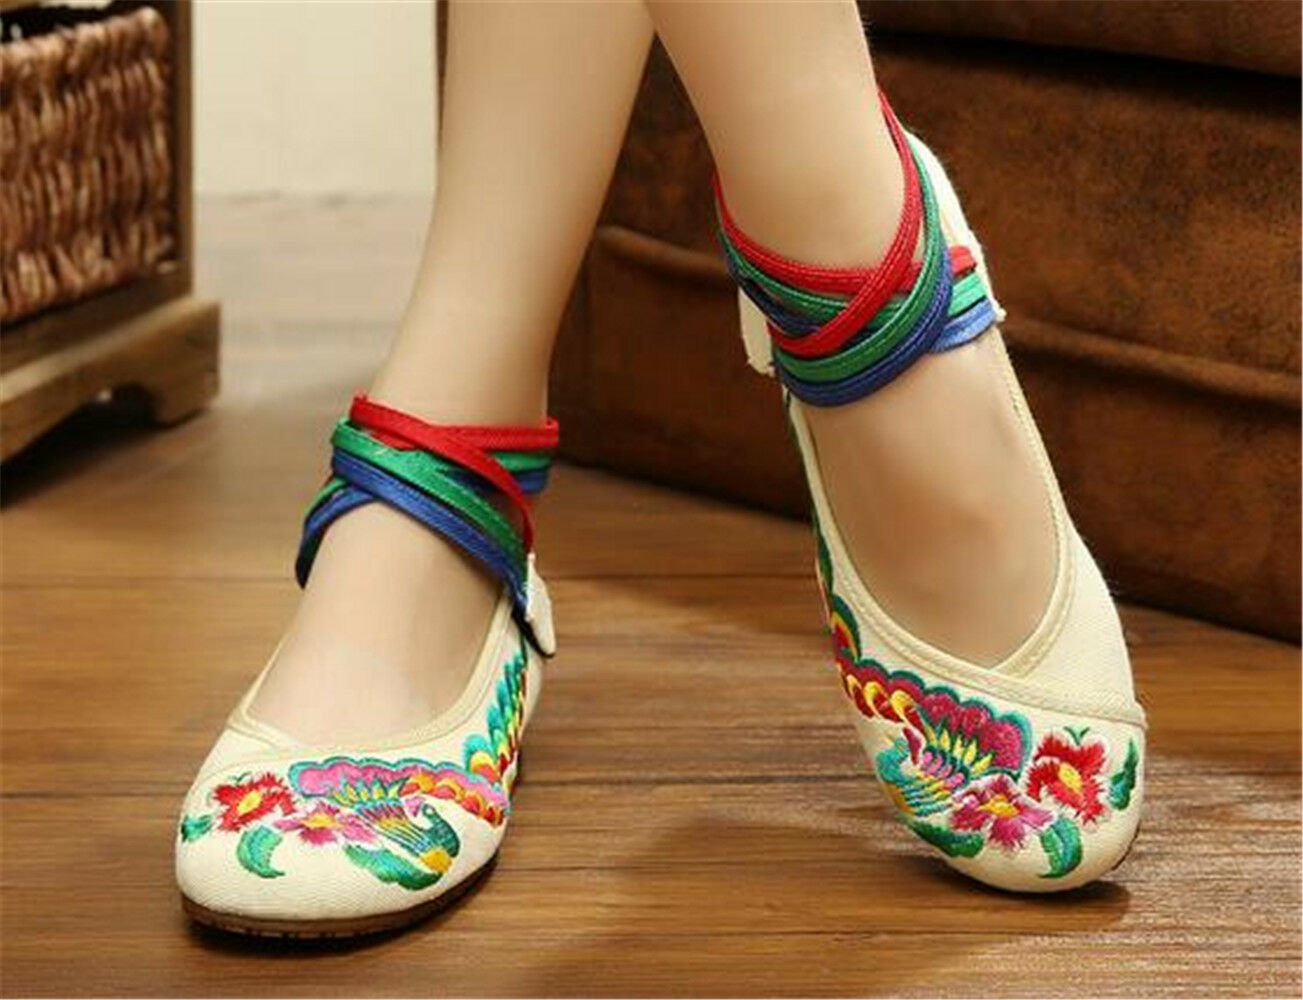 Chinese Embroidered Floral Shoes Women Ballerina Mary Jane Flat Ballet Cotton